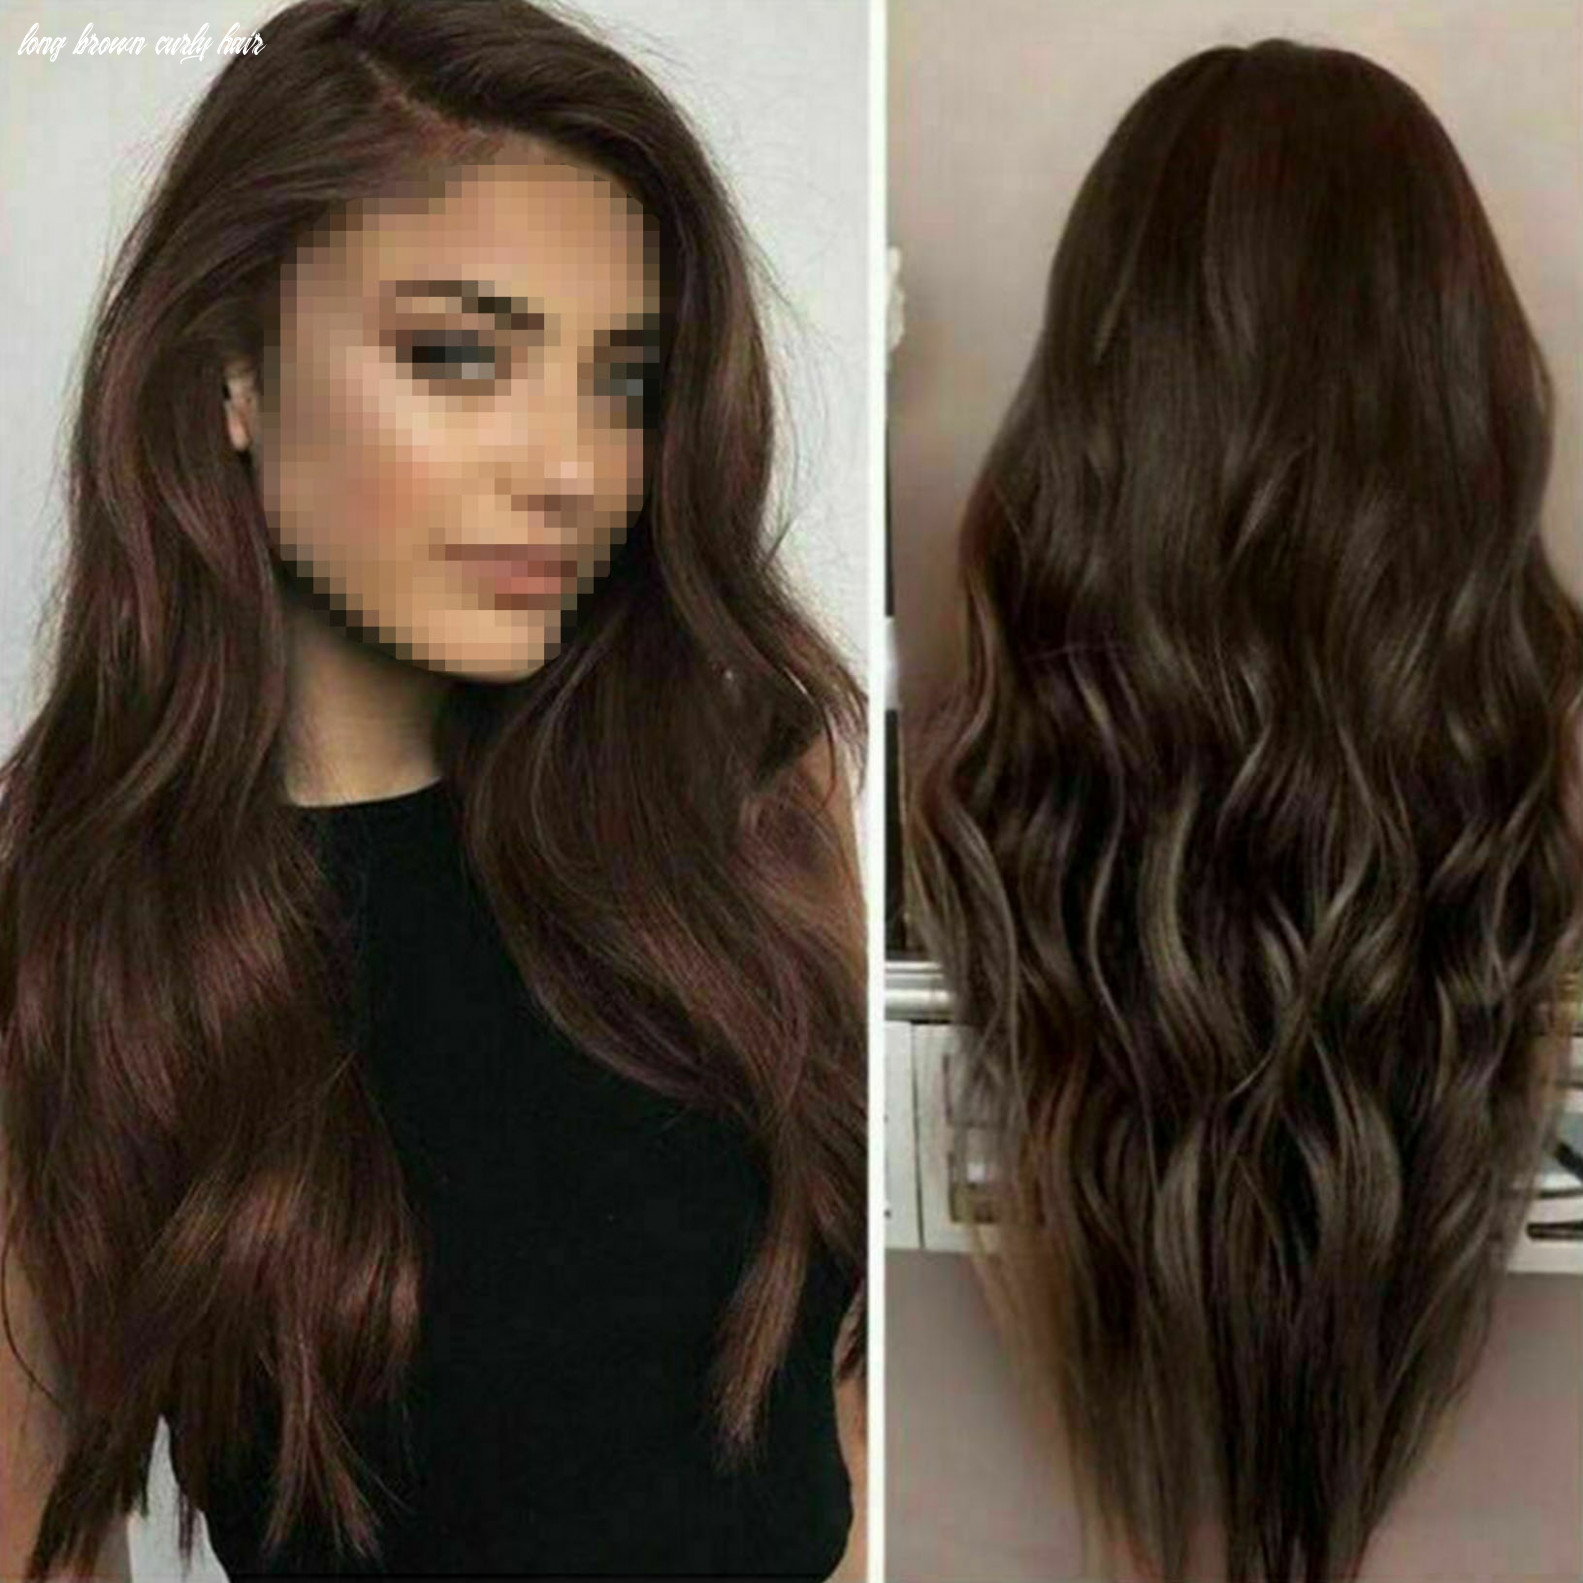 Details about fashion women long wavy wigs dark brown synthetic curly hair cosplay wig natural long brown curly hair